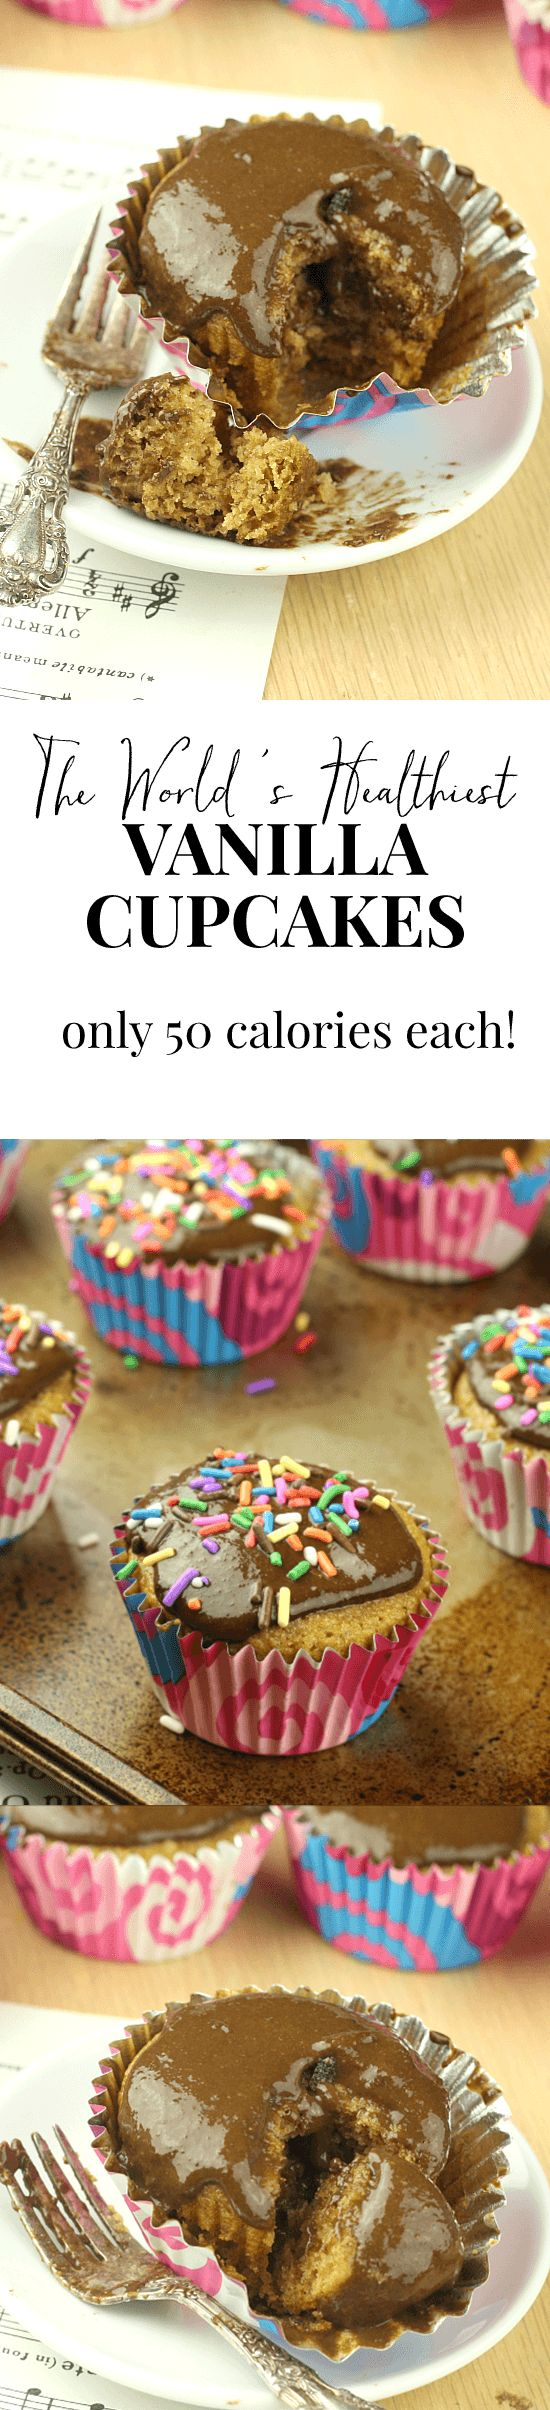 The 50 calories cupcake! Also the last cupcake recipe you'll ever need. They didn't last 5 minutes in my house.